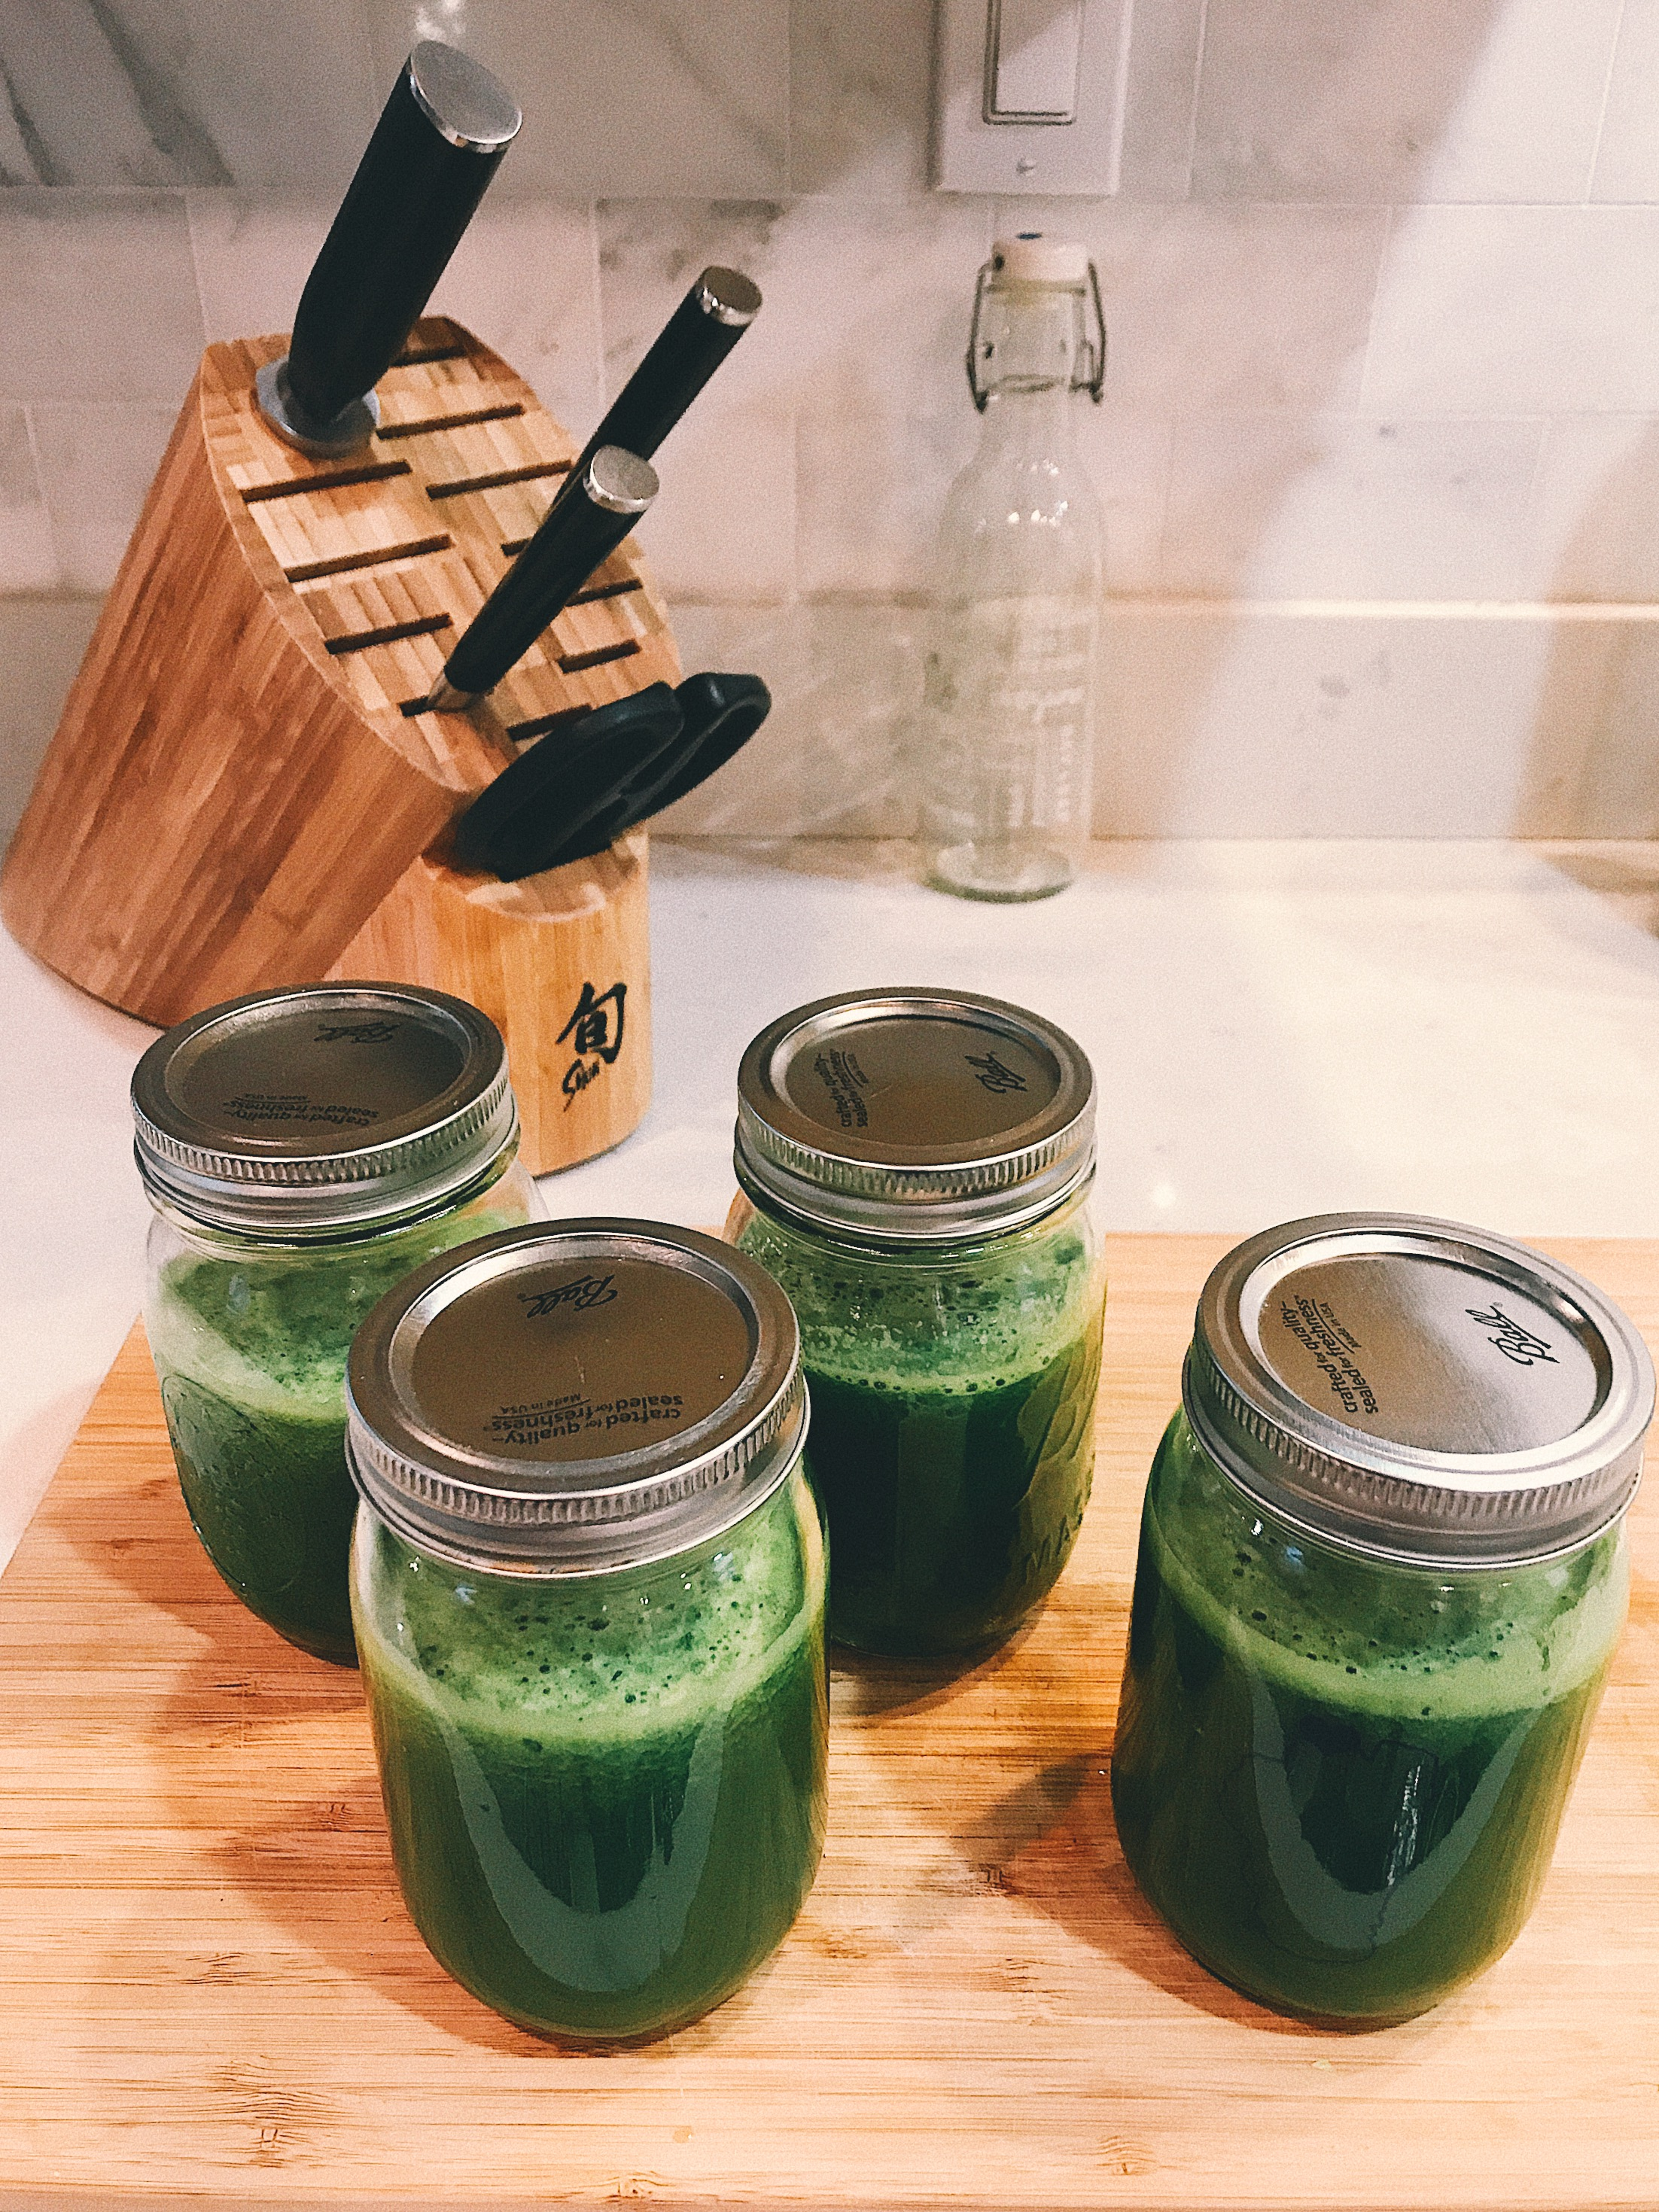 Our daily juice: spinach, kale, romaine, lime, celery, cucumber.